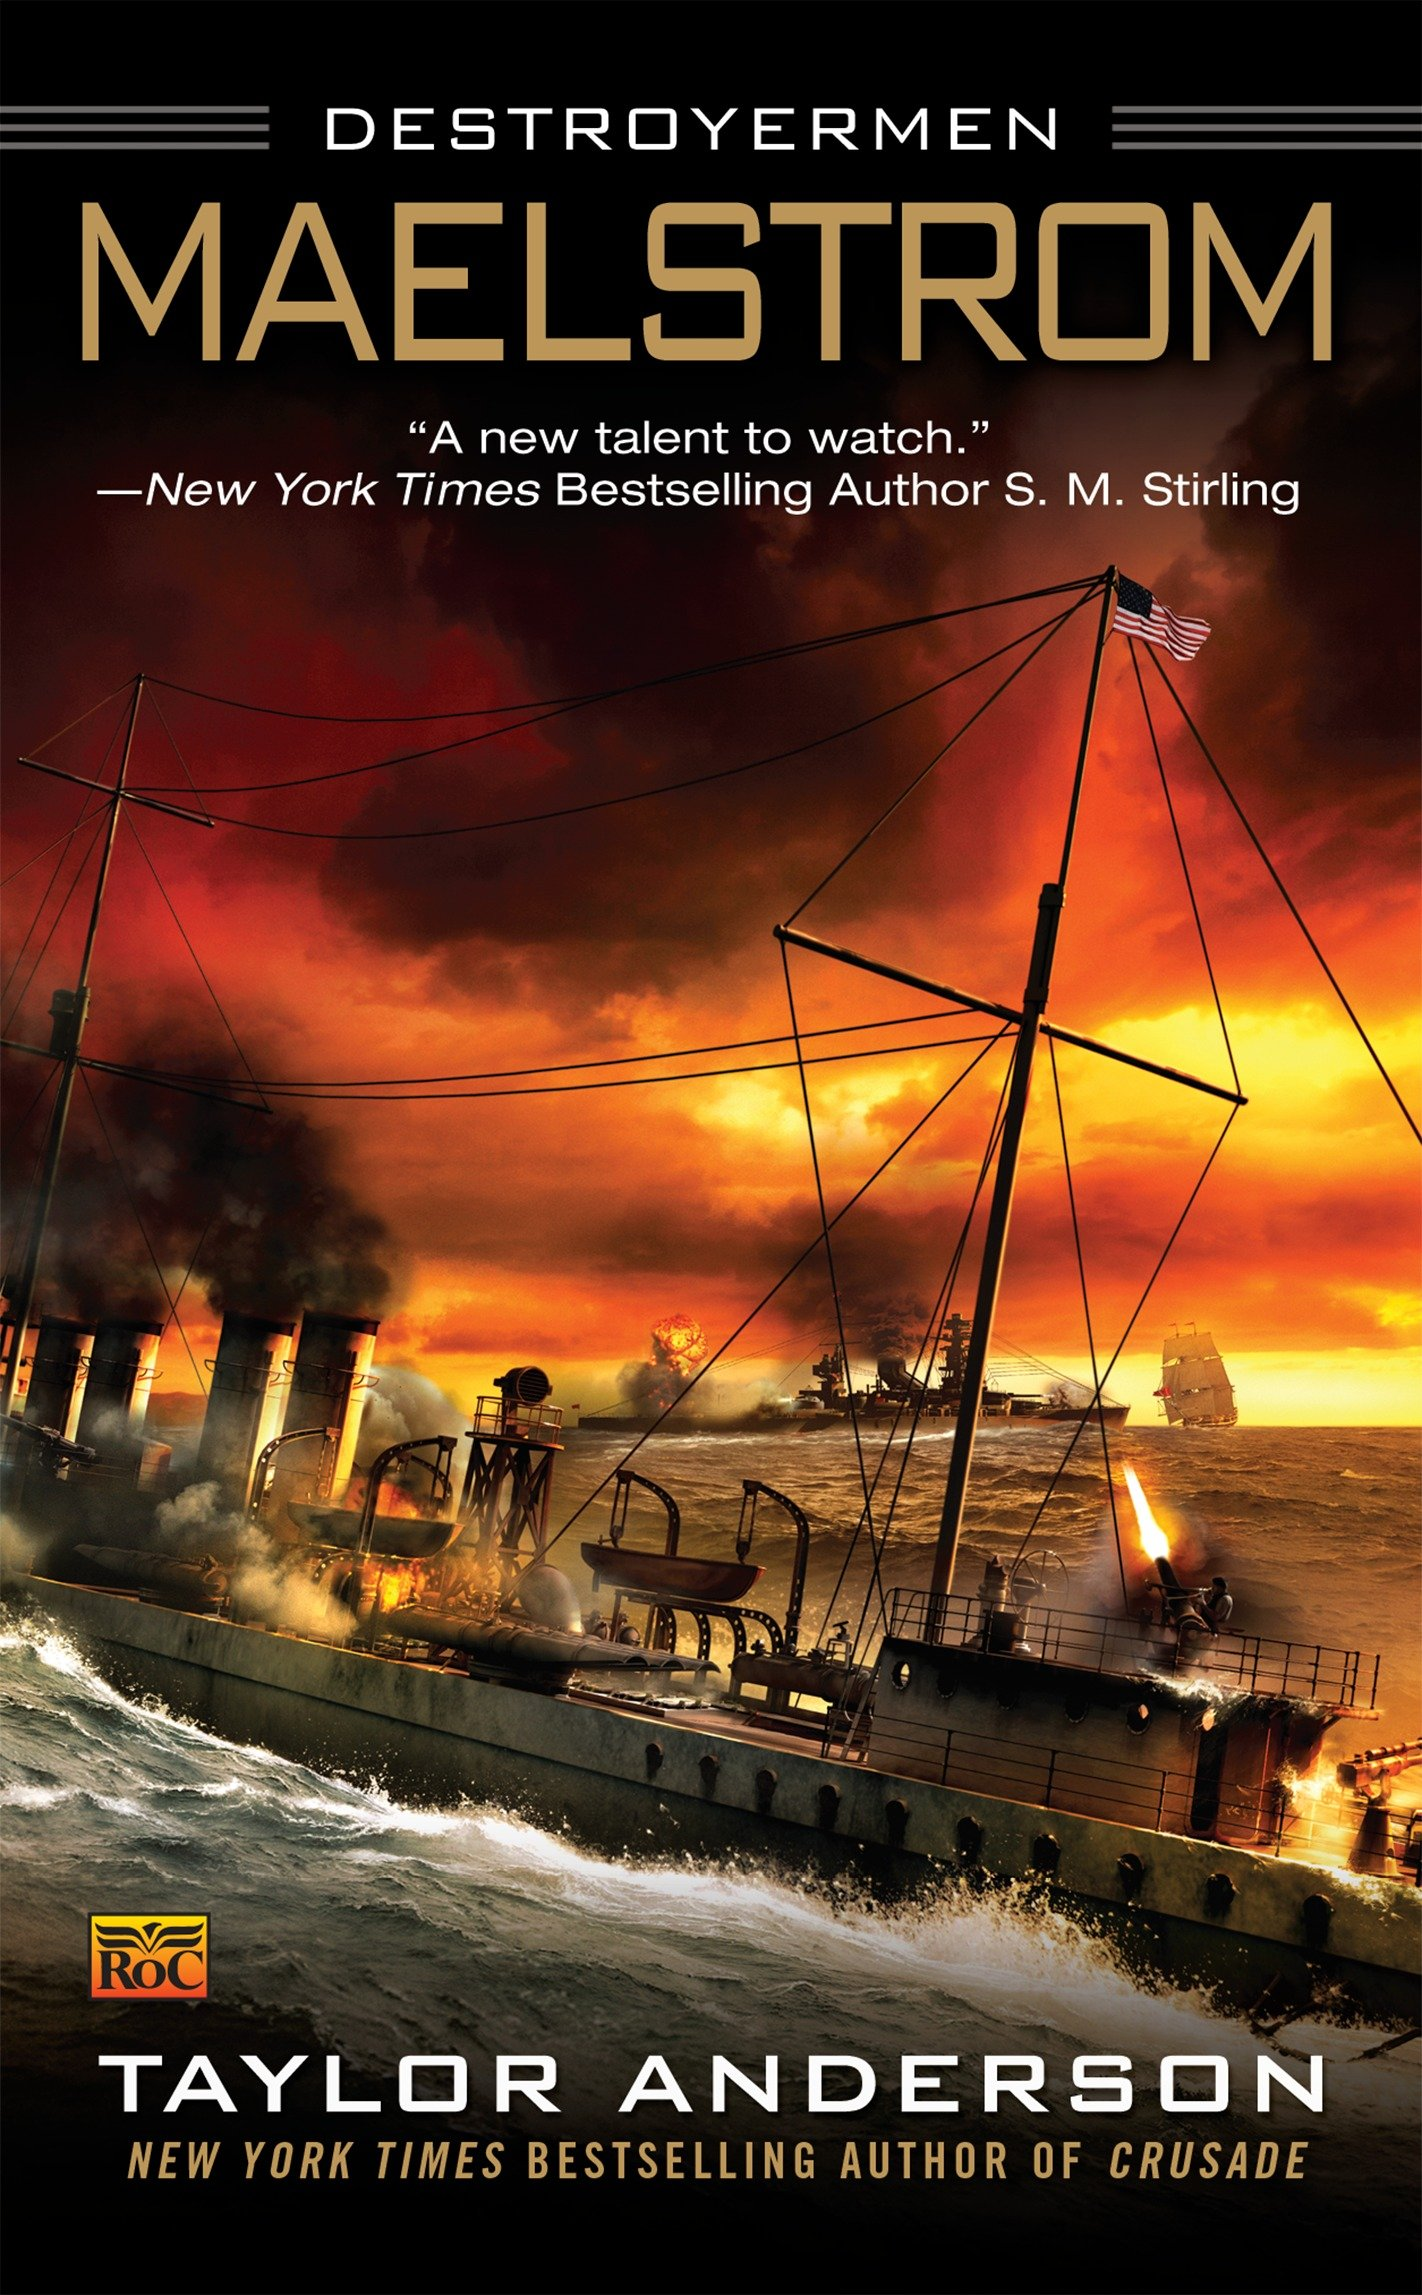 Maelstrom cover image